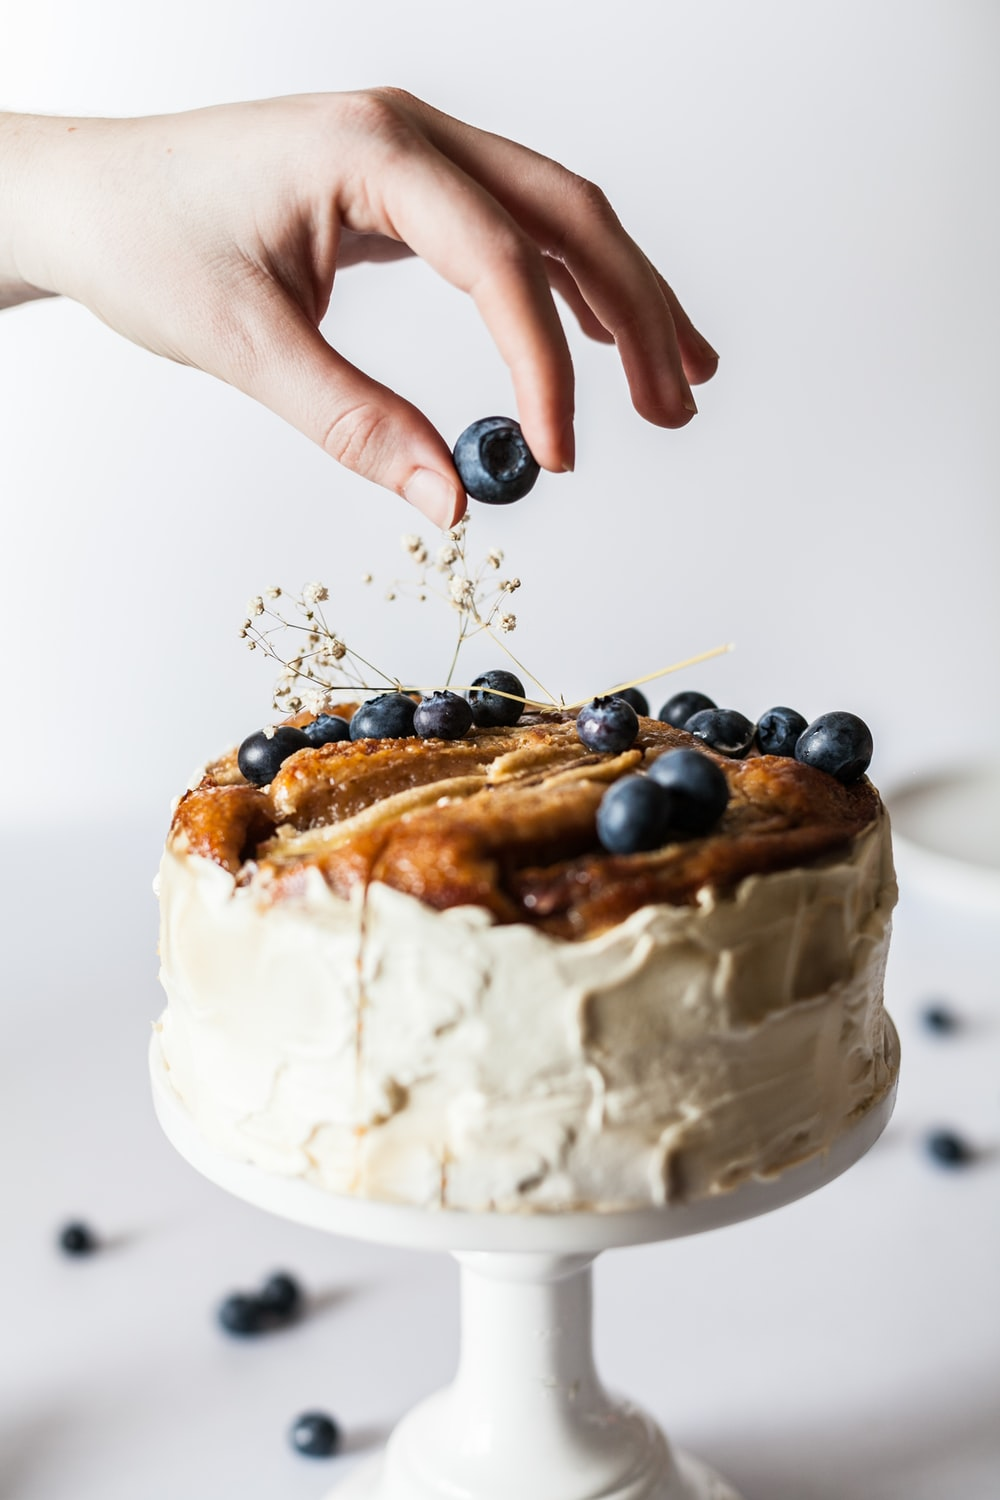 person holding black fruit near cake